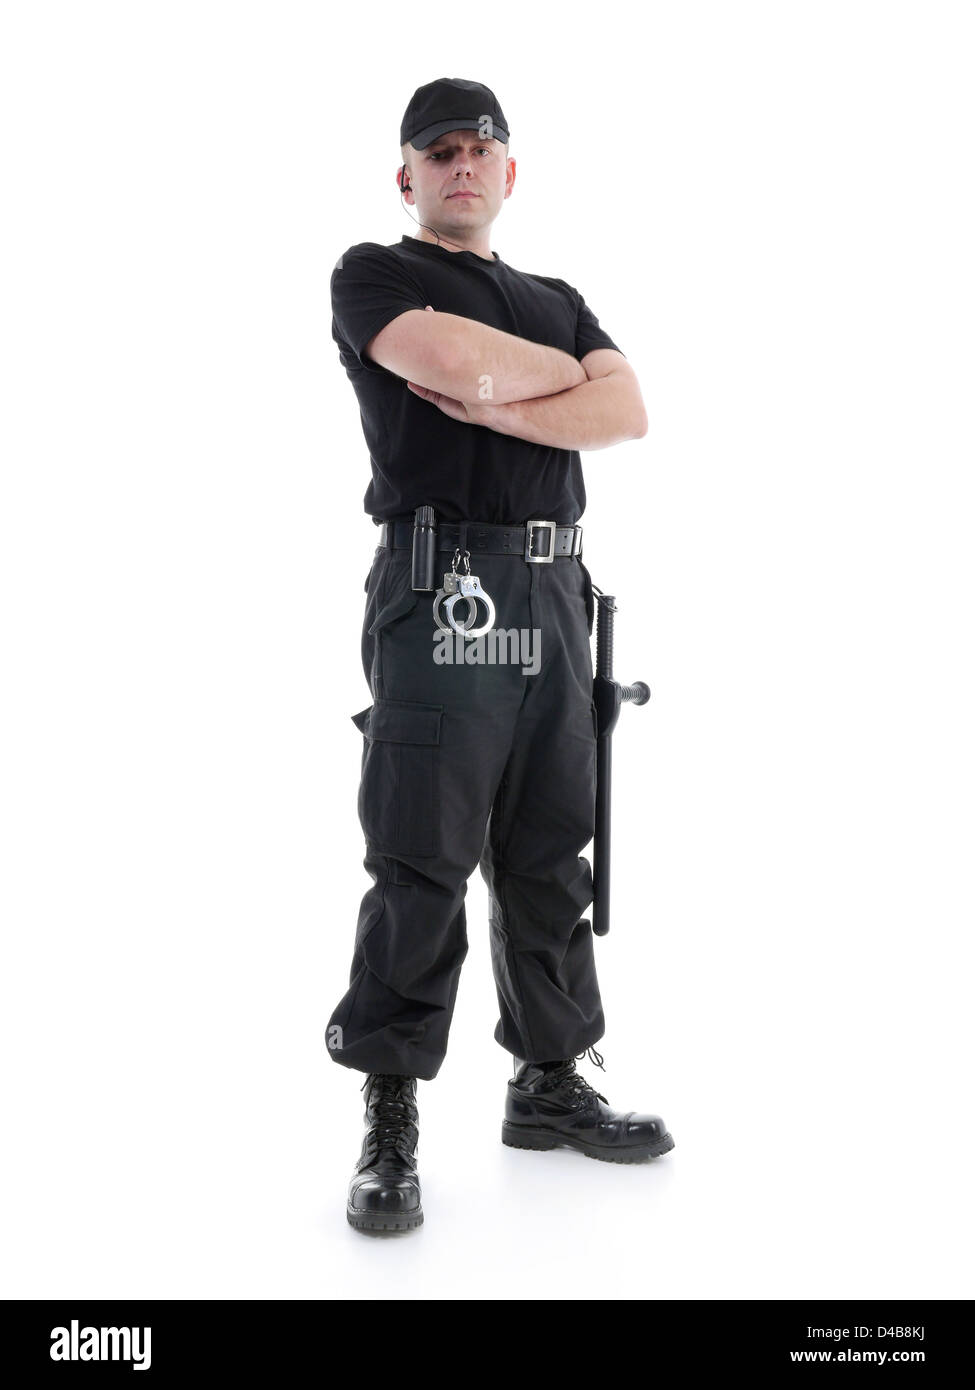 Security man wearing black uniform equipped with police club and handcuffs standing confidently with arms crossed, - Stock Image